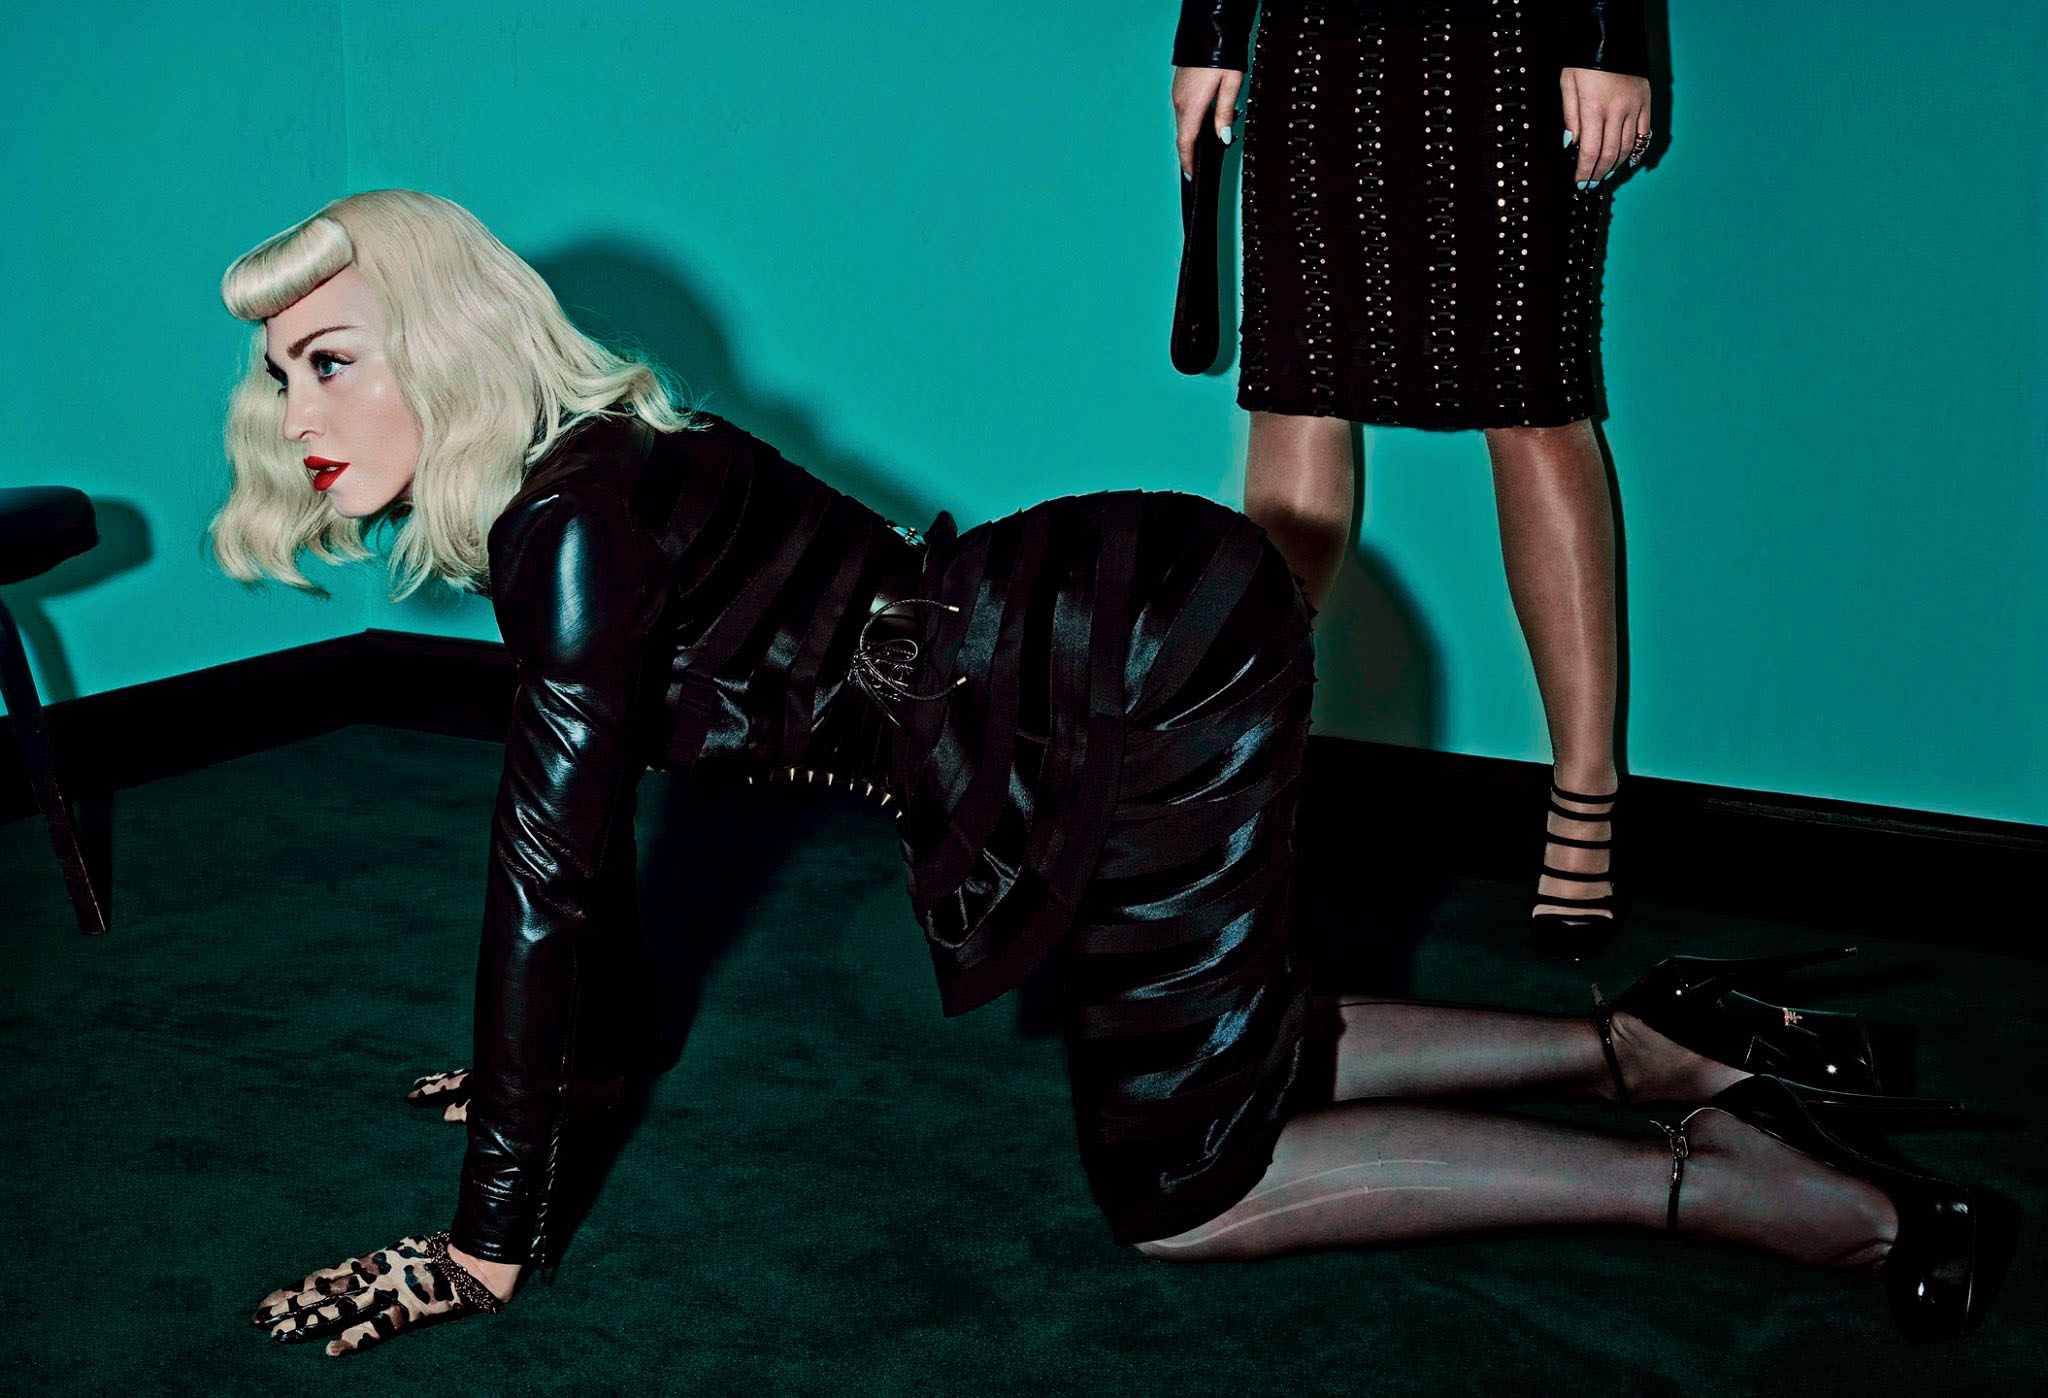 katy-perry-and-madonna-by-steven-klein-for-v-magazine-89-summer-201421